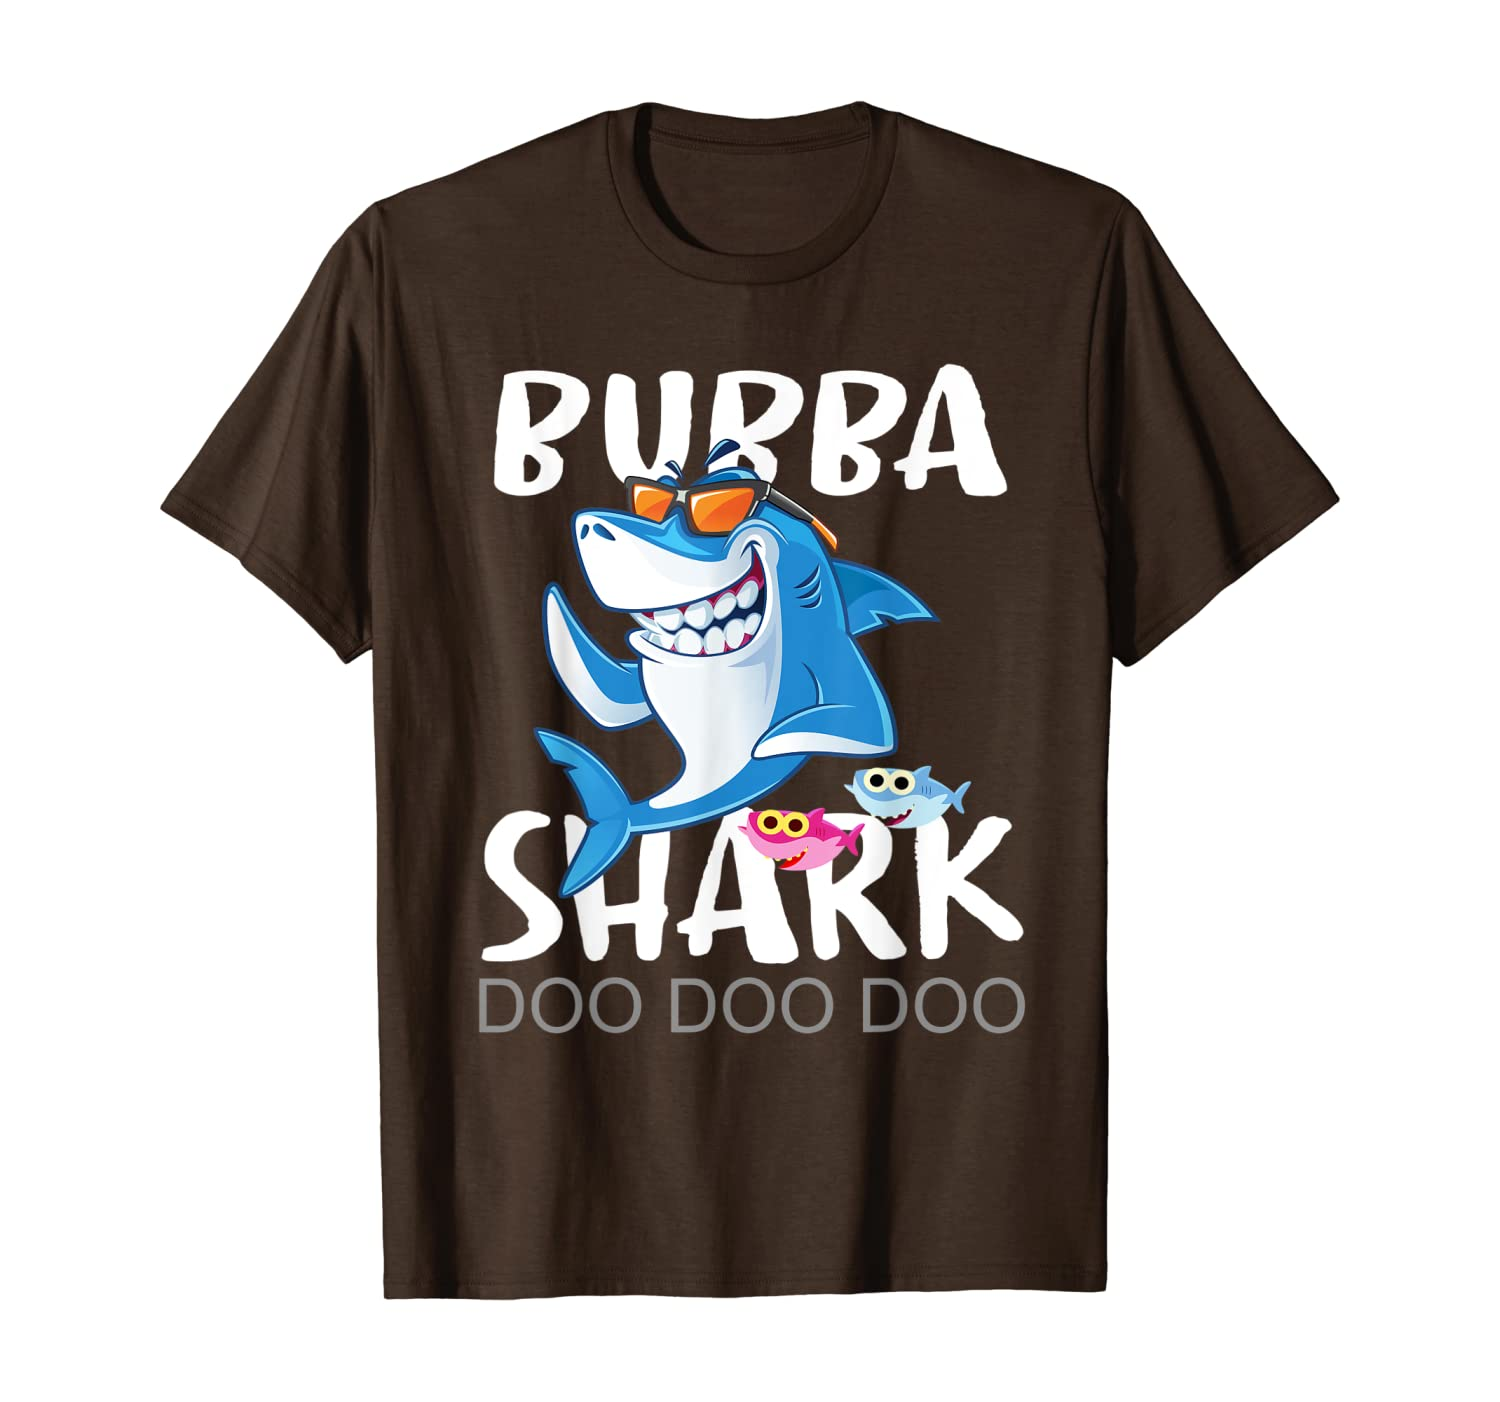 Mens Bubba Shark Shirt, Fathers Day Gift From Wife Son Daughter - Dad Shirt Up To 5xl